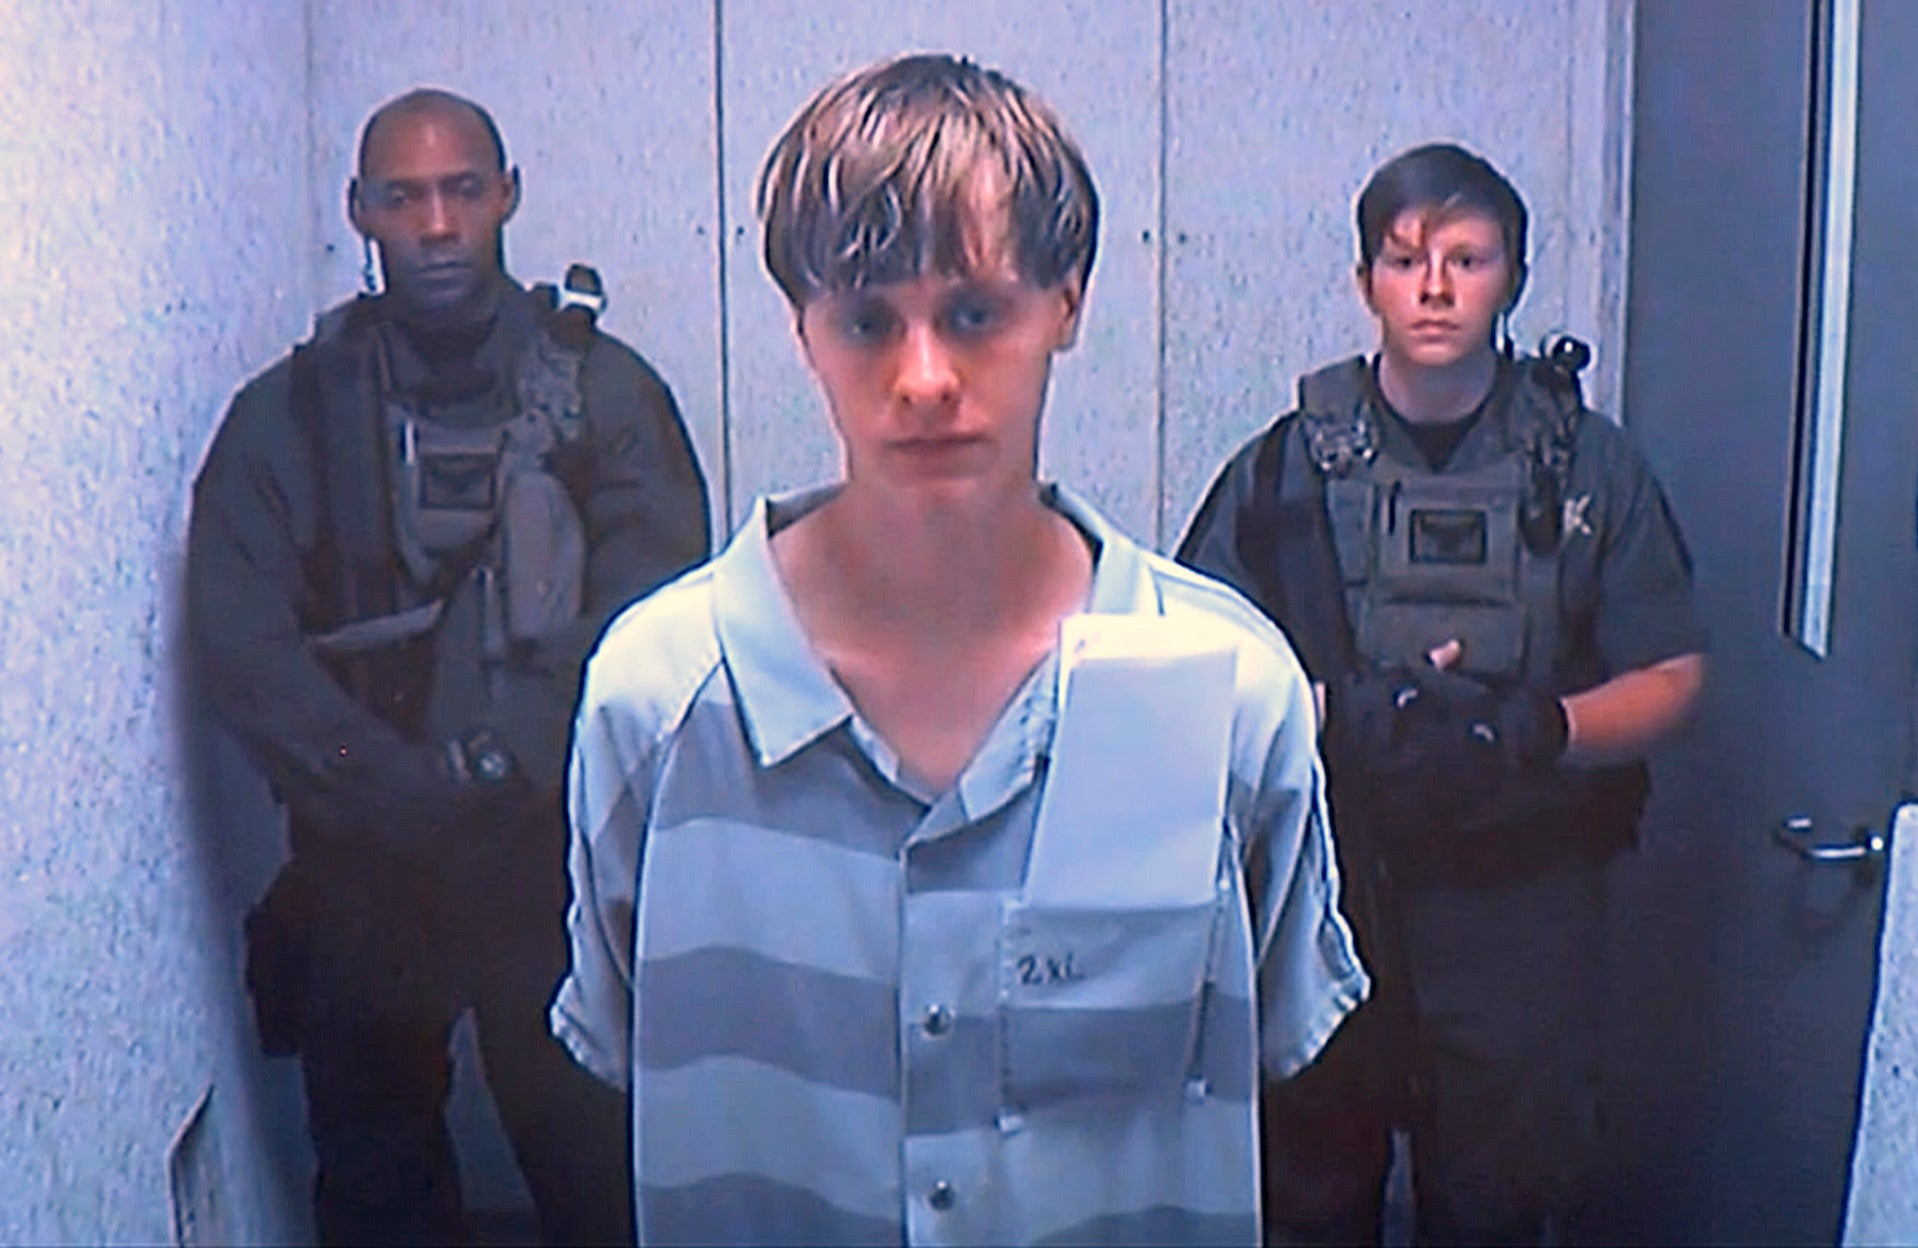 Charleston Shooter Dylann Roof Formally Indicted on Nine Counts of Murder